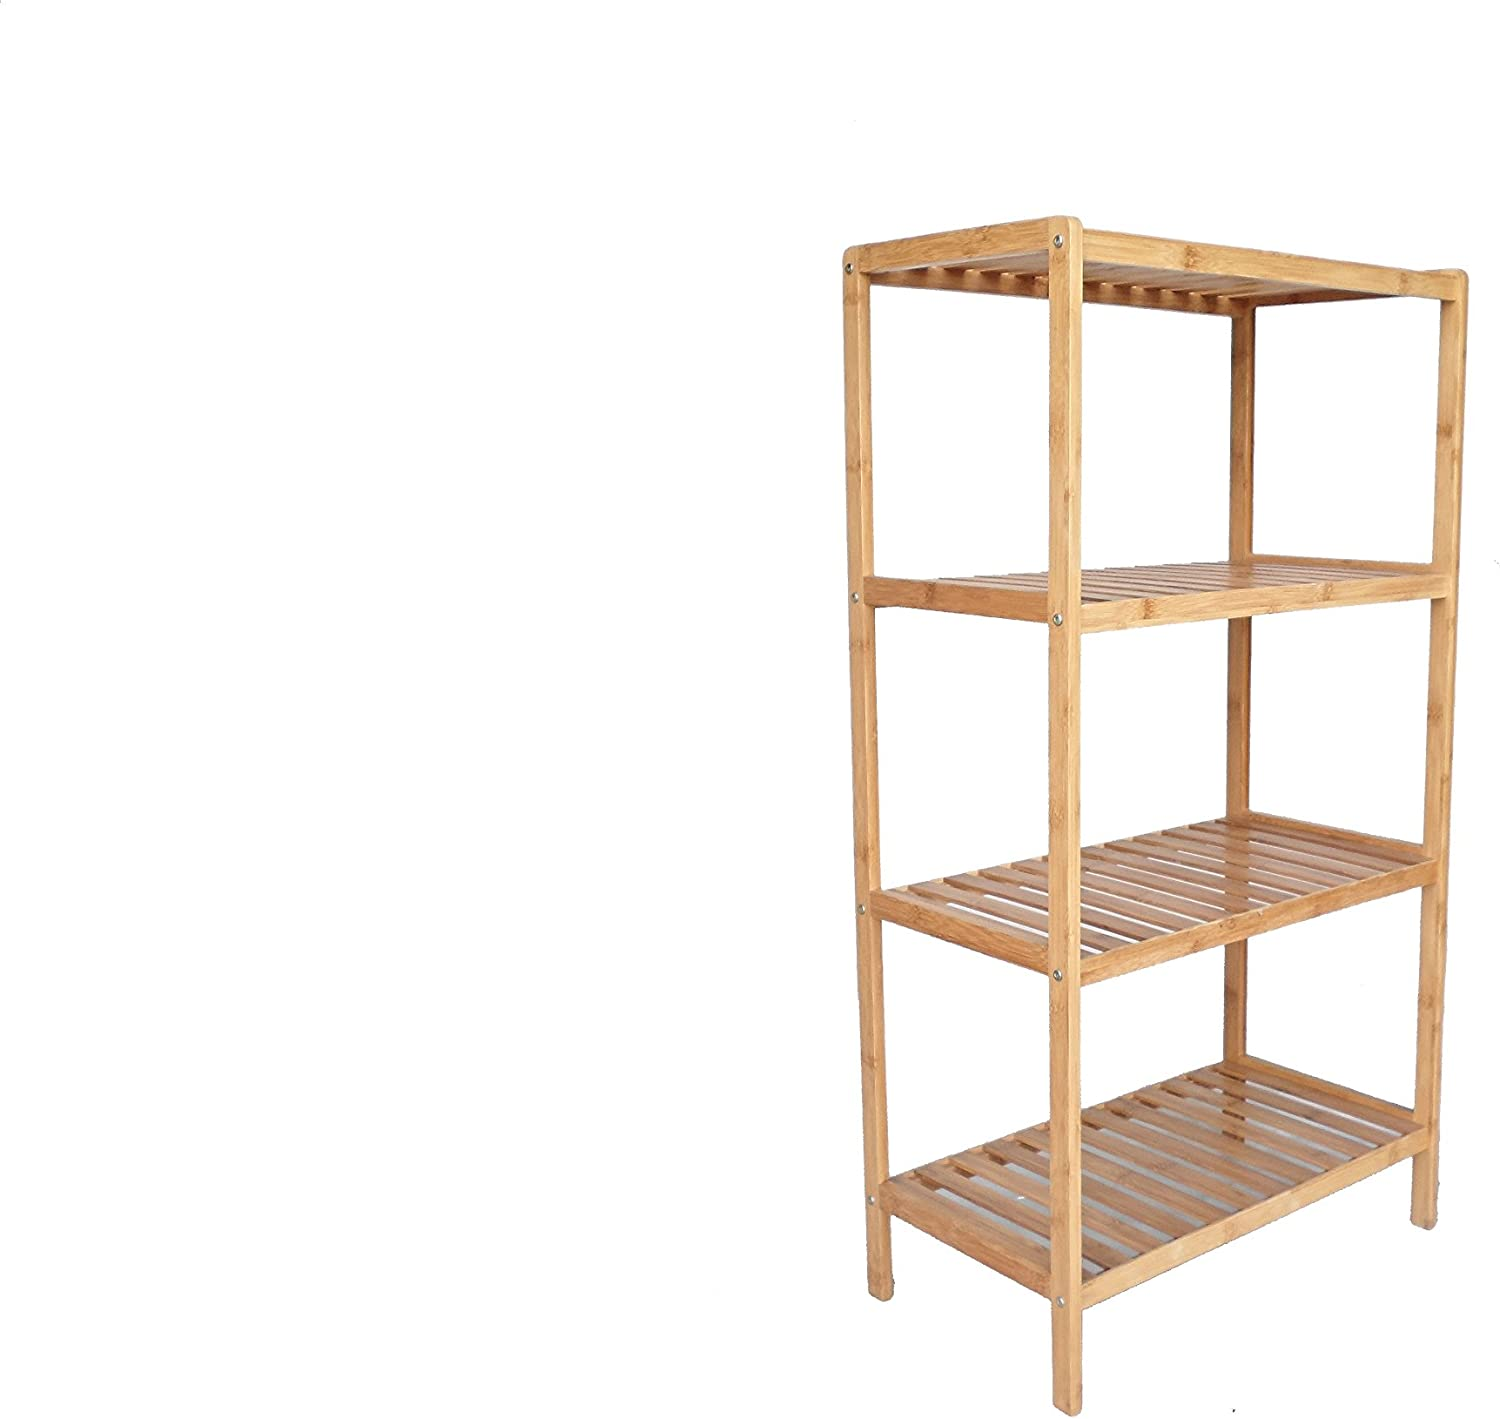 Proman Products ST16723 Bamboo 4-Tier Shelf